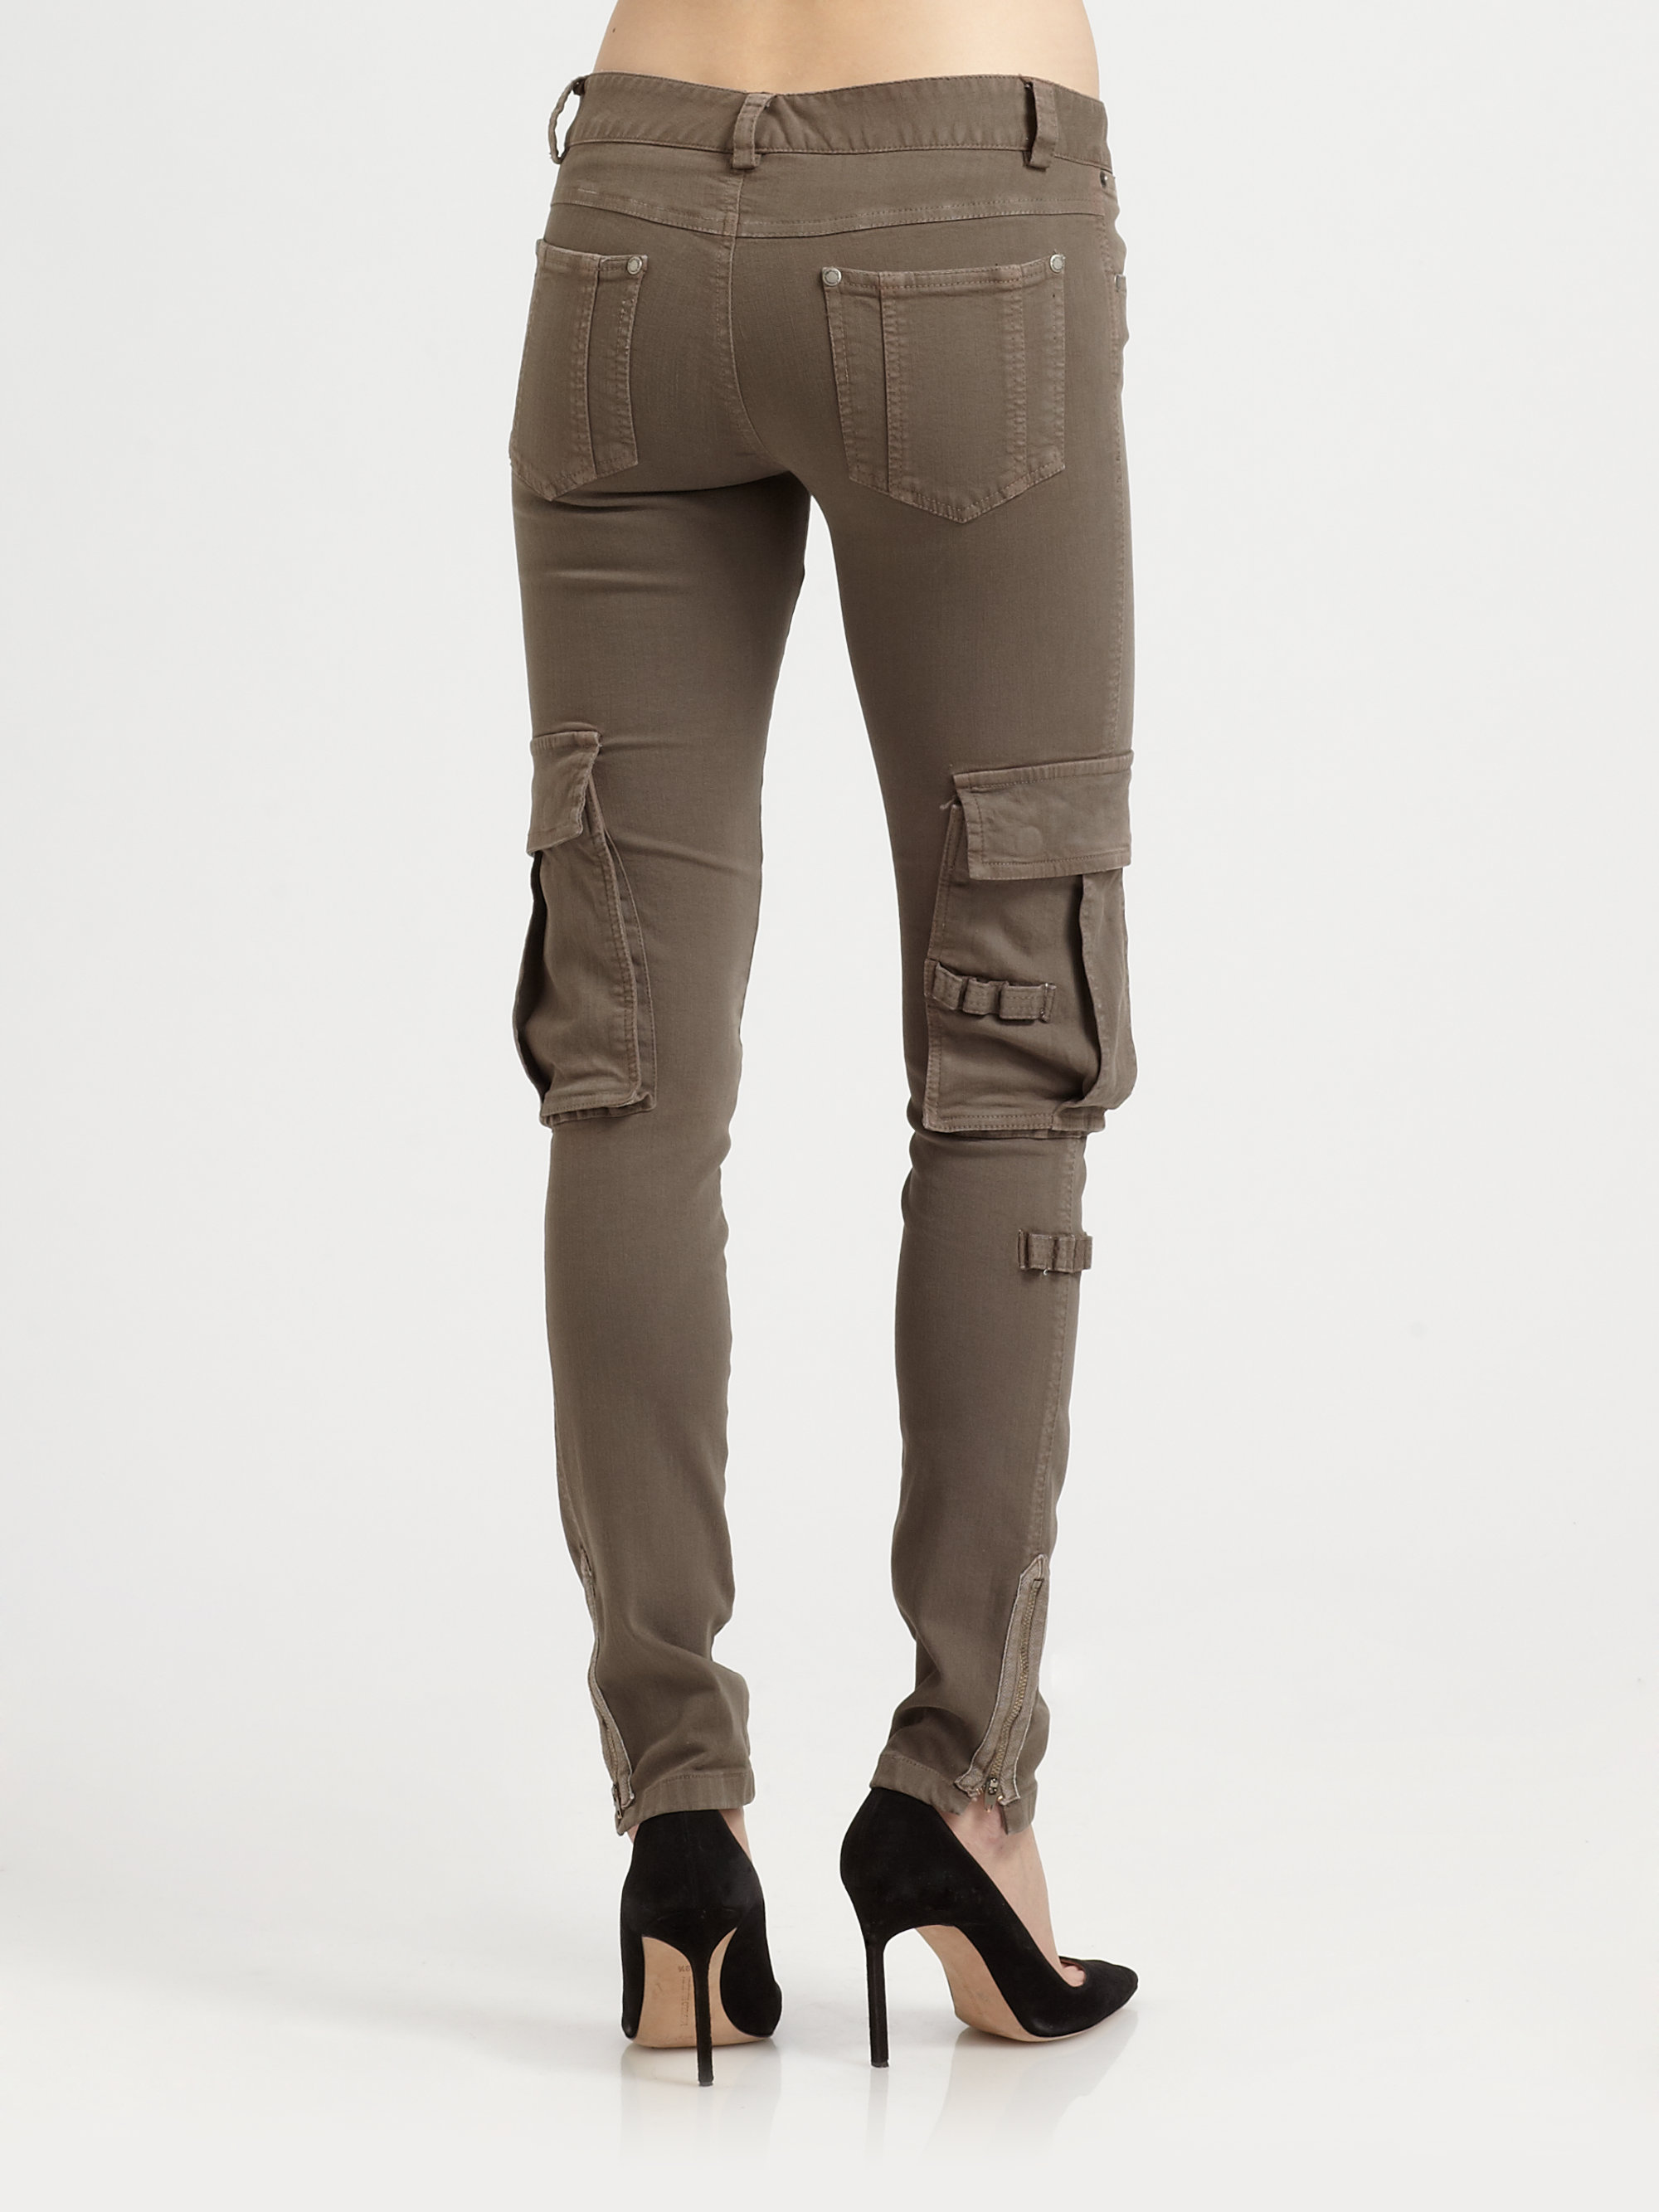 Fantastic In A Roundabout Way, I Want To Say That My Argument Against Jeans Doesnt Apply To Women This Is A Male Fashion  My Favorite Cargo Pants When I Was In Middle School Were A Light Olive Green  Talk About Unique Jeans Lack Distinction